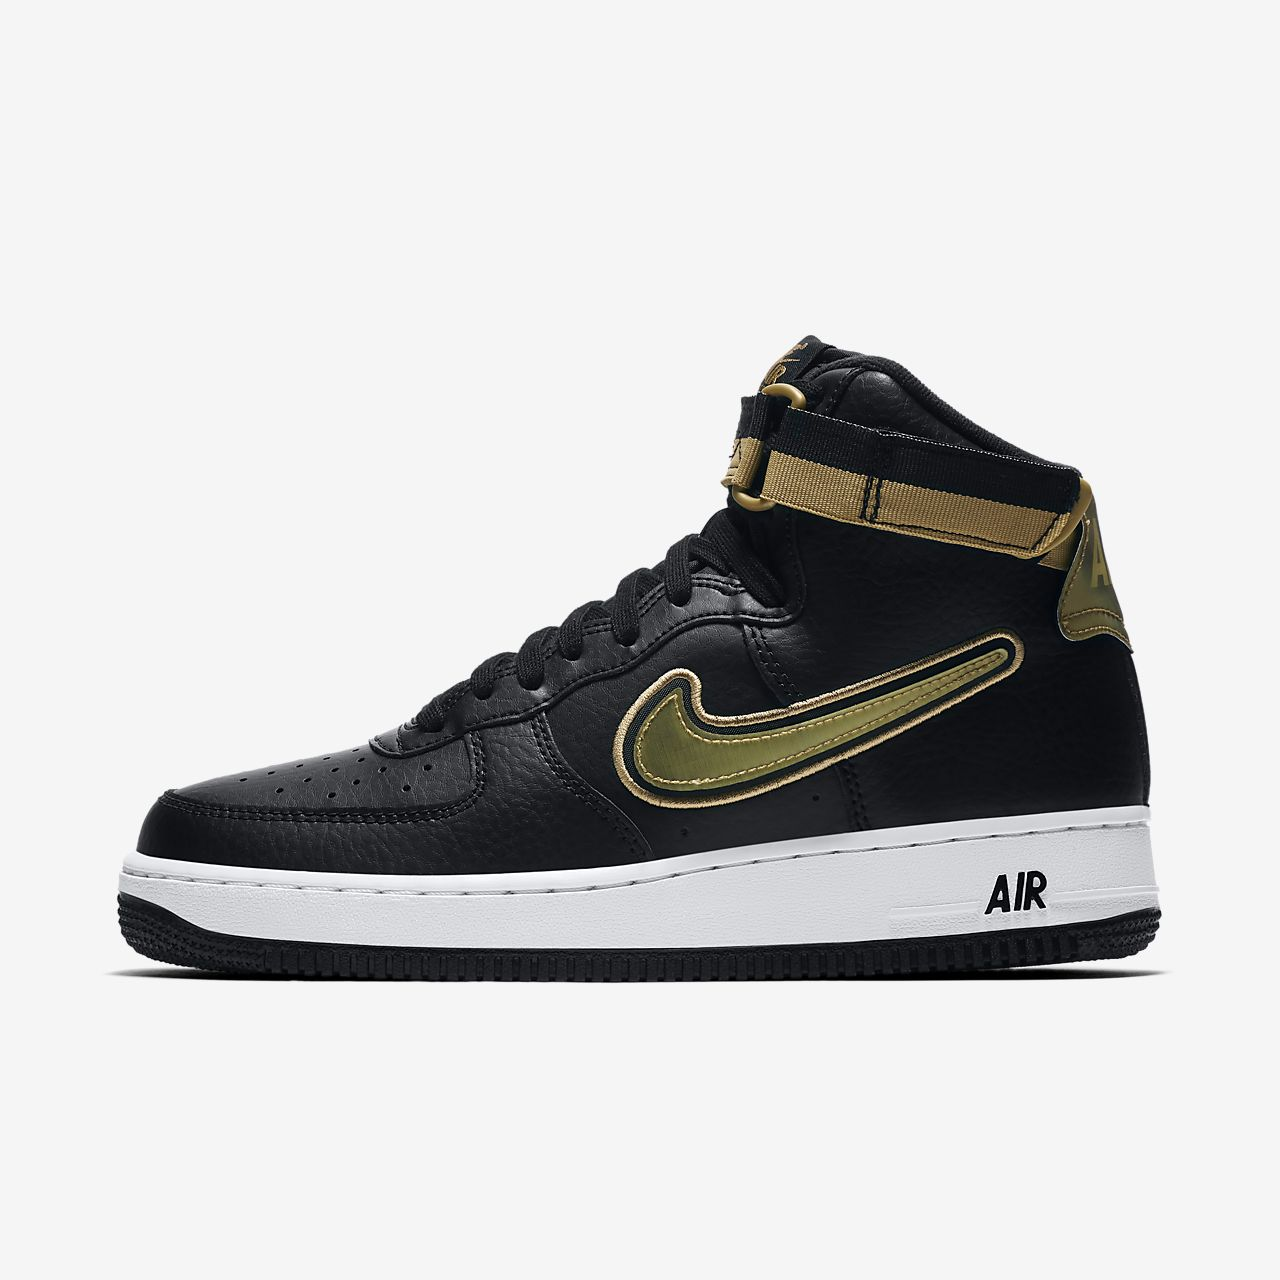 official photos 72899 98f20 ... Calzado para hombre Nike Air Force 1 High  07 LV8 Sport NBA